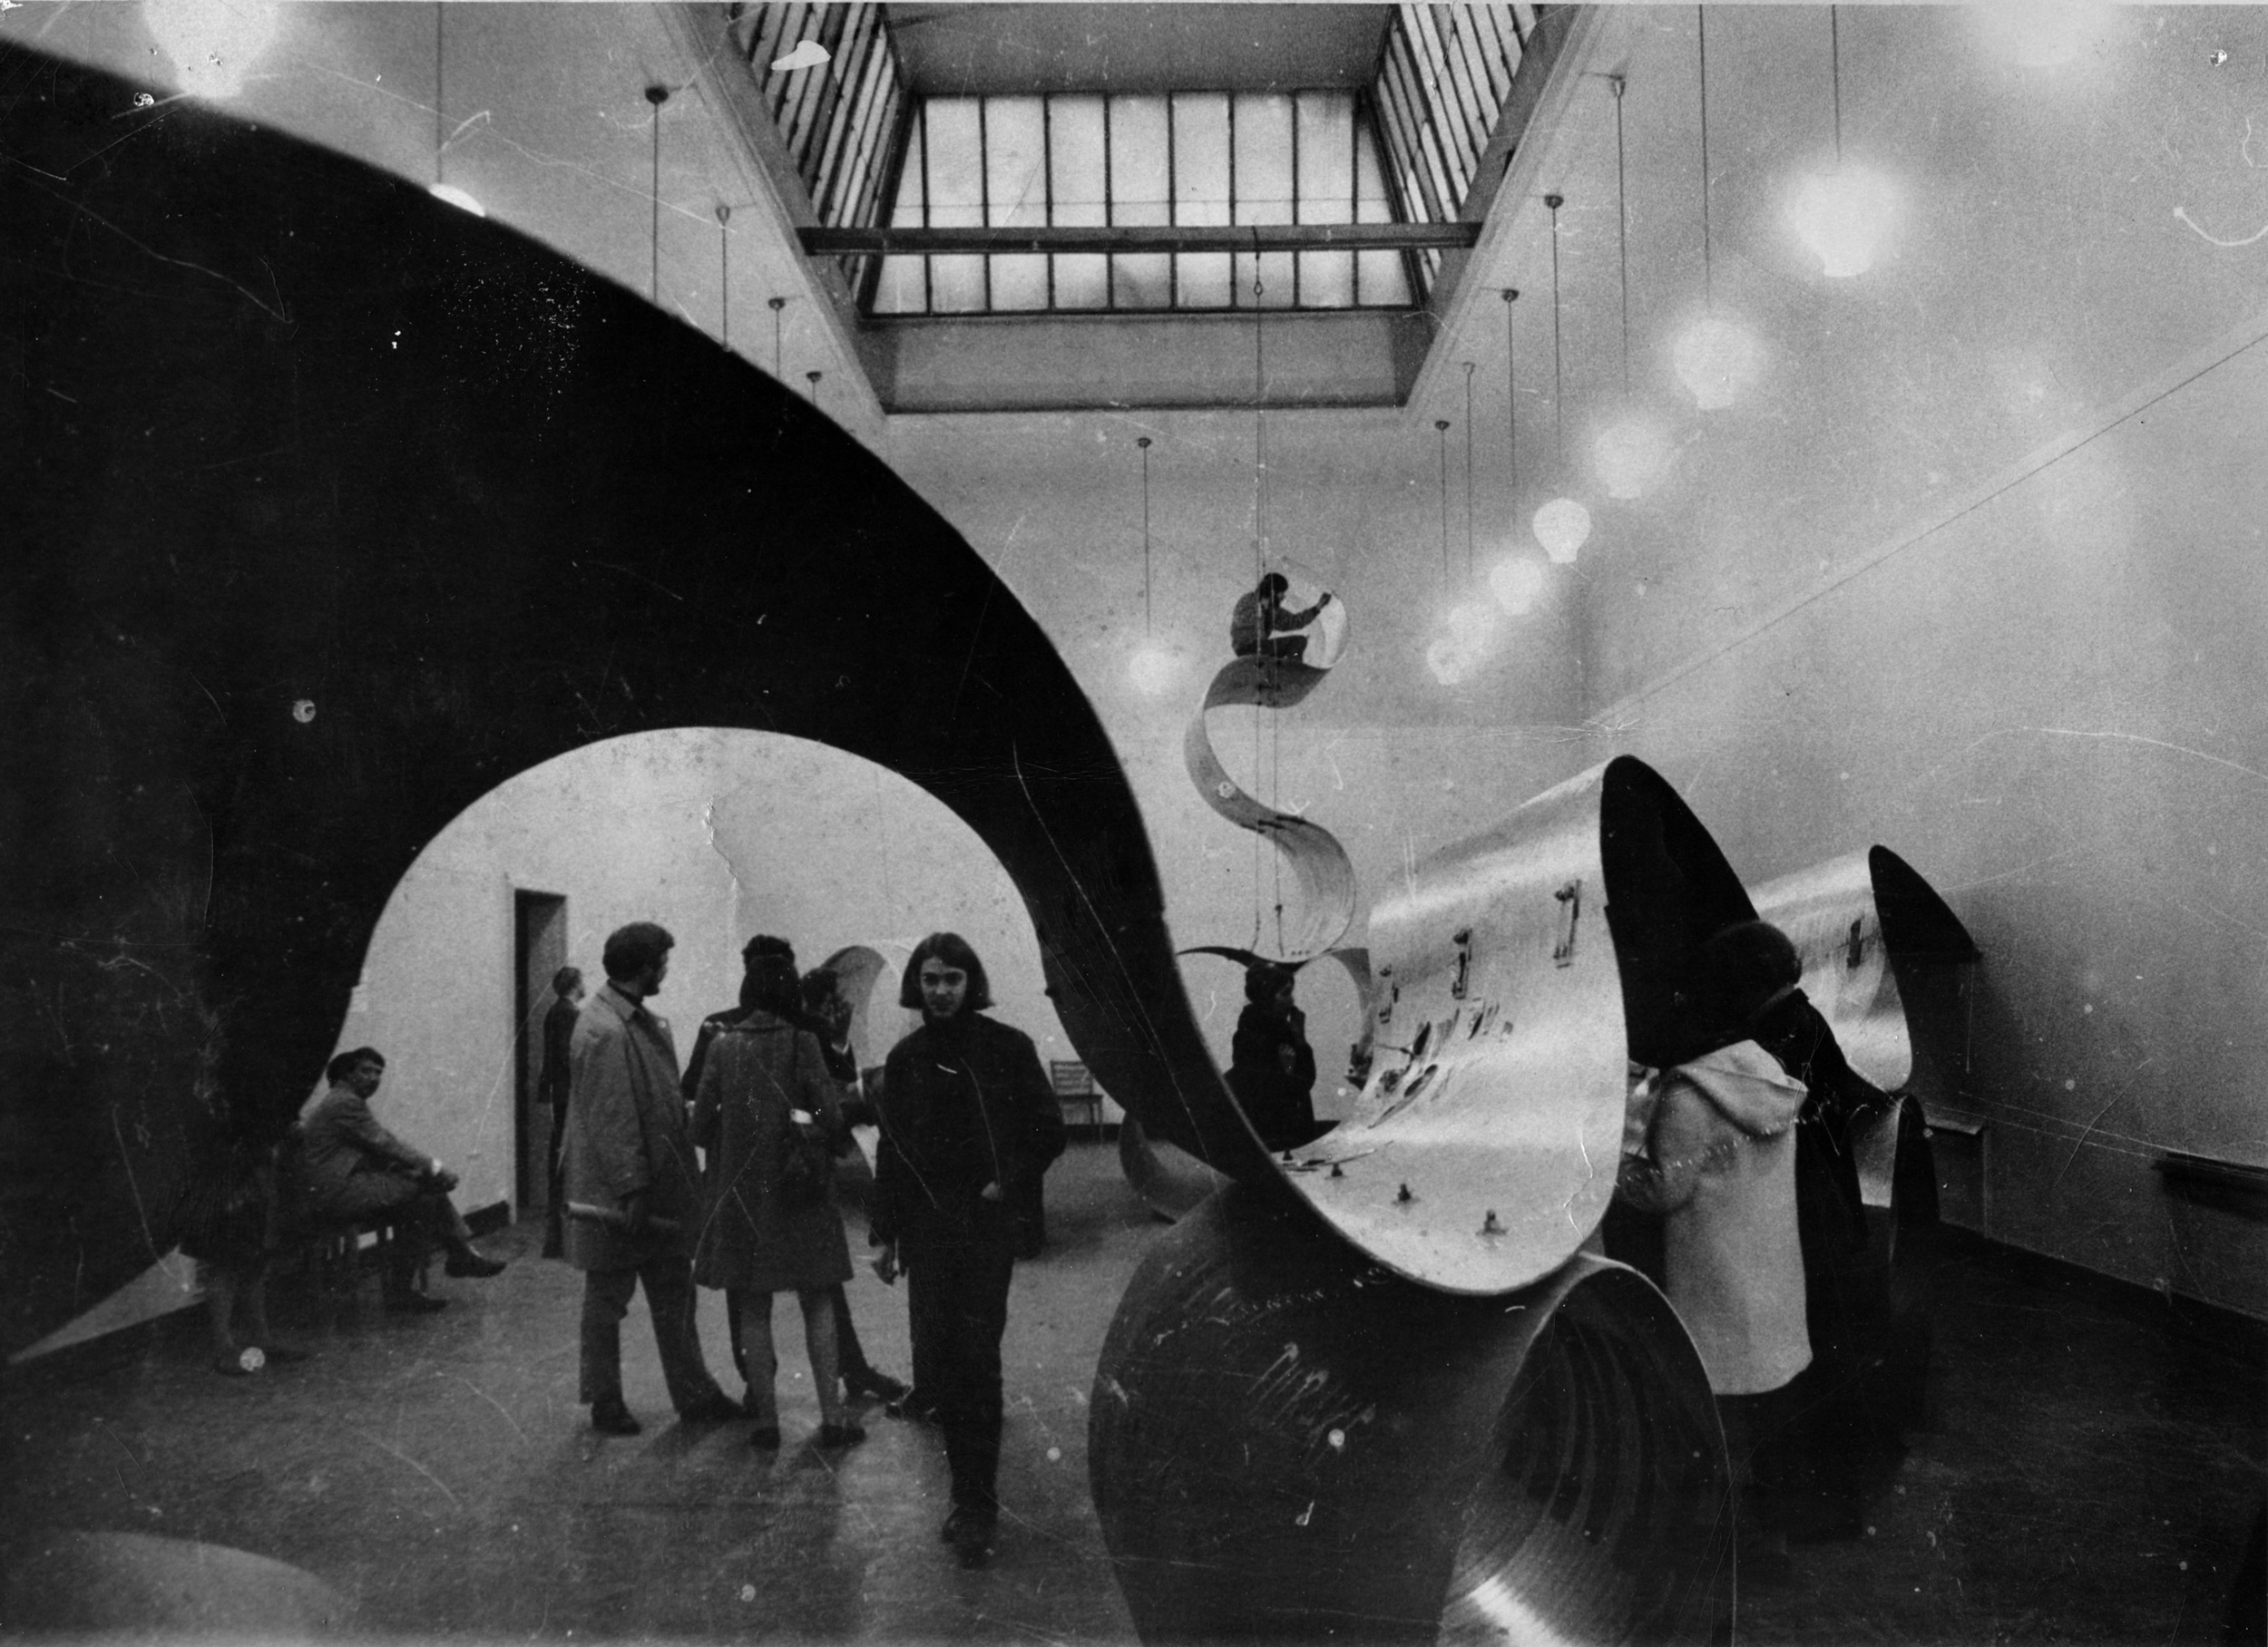 From the opening of Surroundings, Kunstnernes Hus 1969, unknown photographer